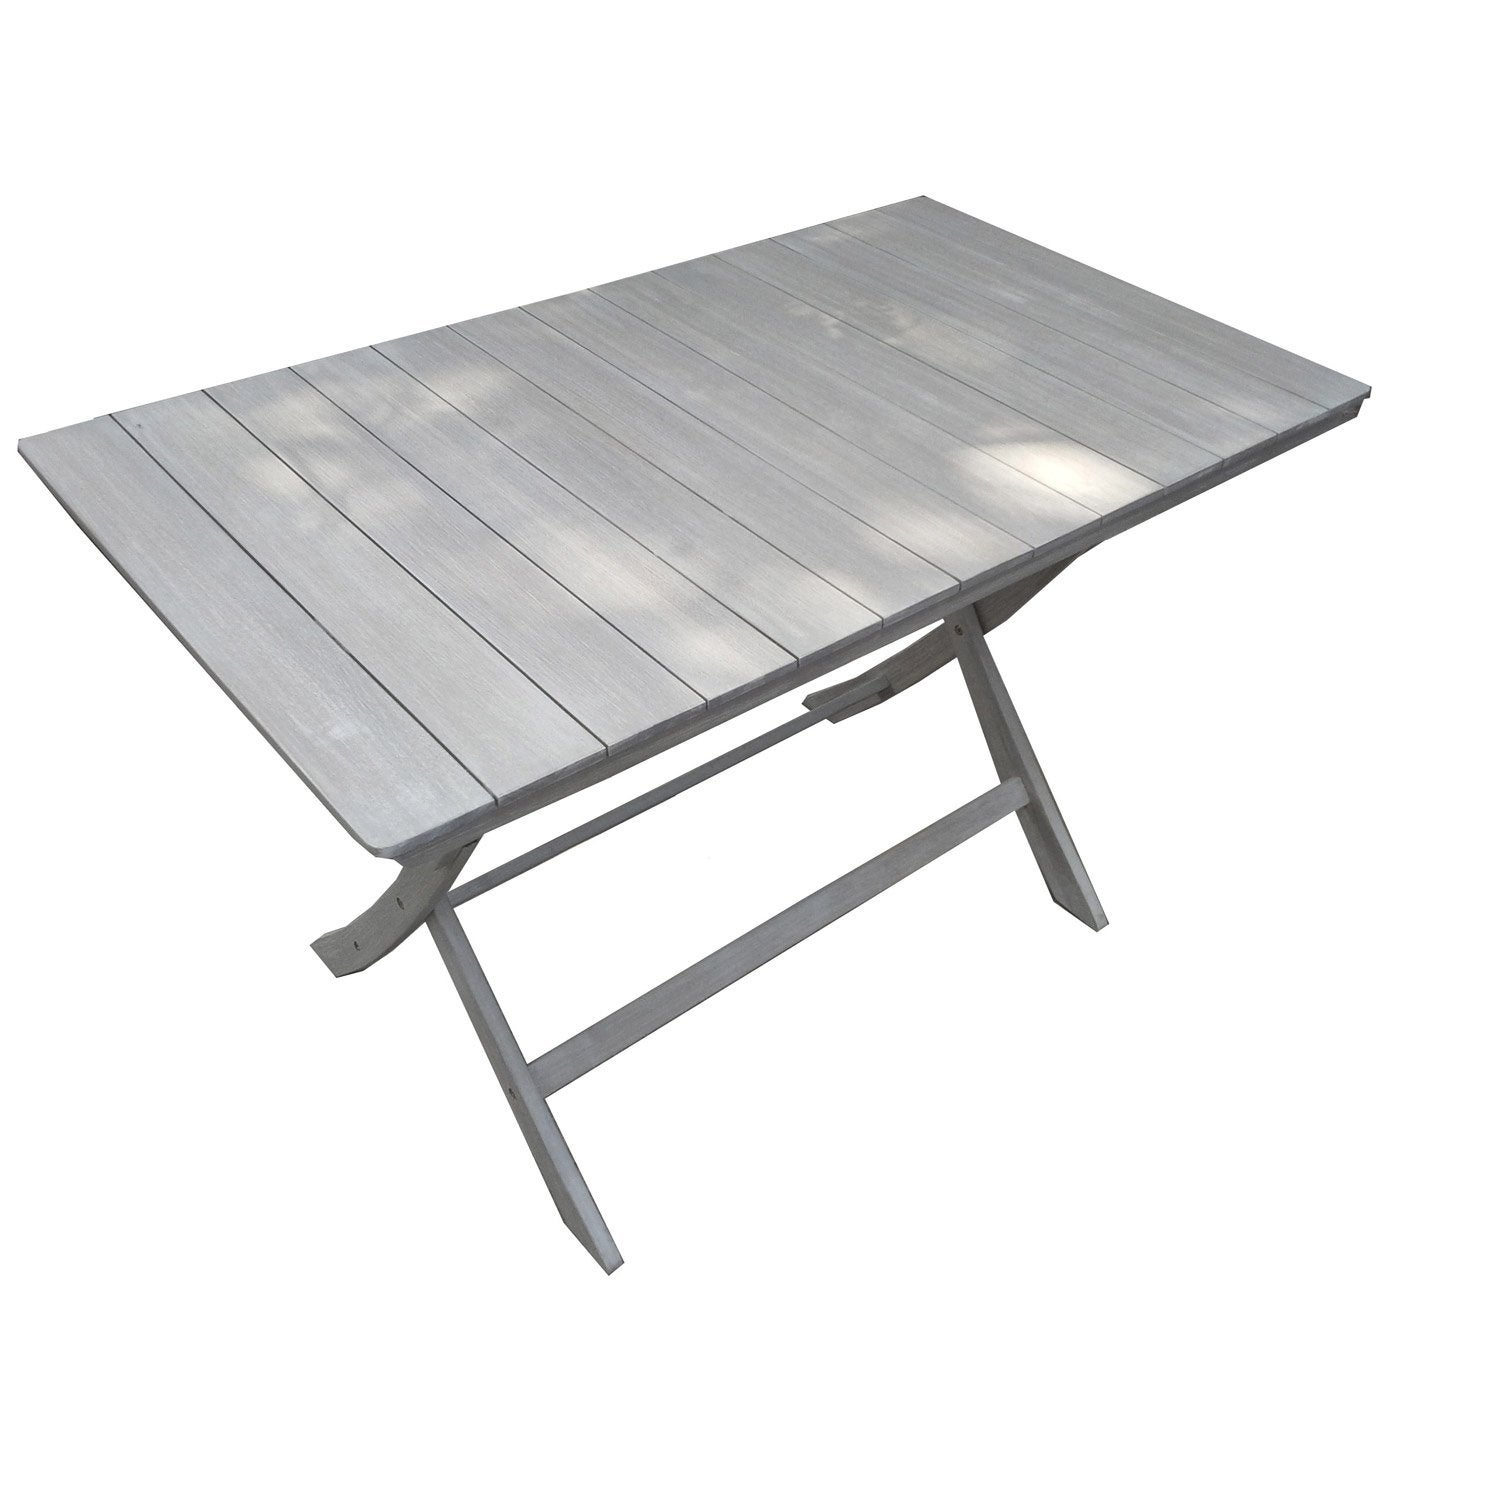 Table de jardin naterial portofino rectangulaire gris 4 for Castorama exterieur table